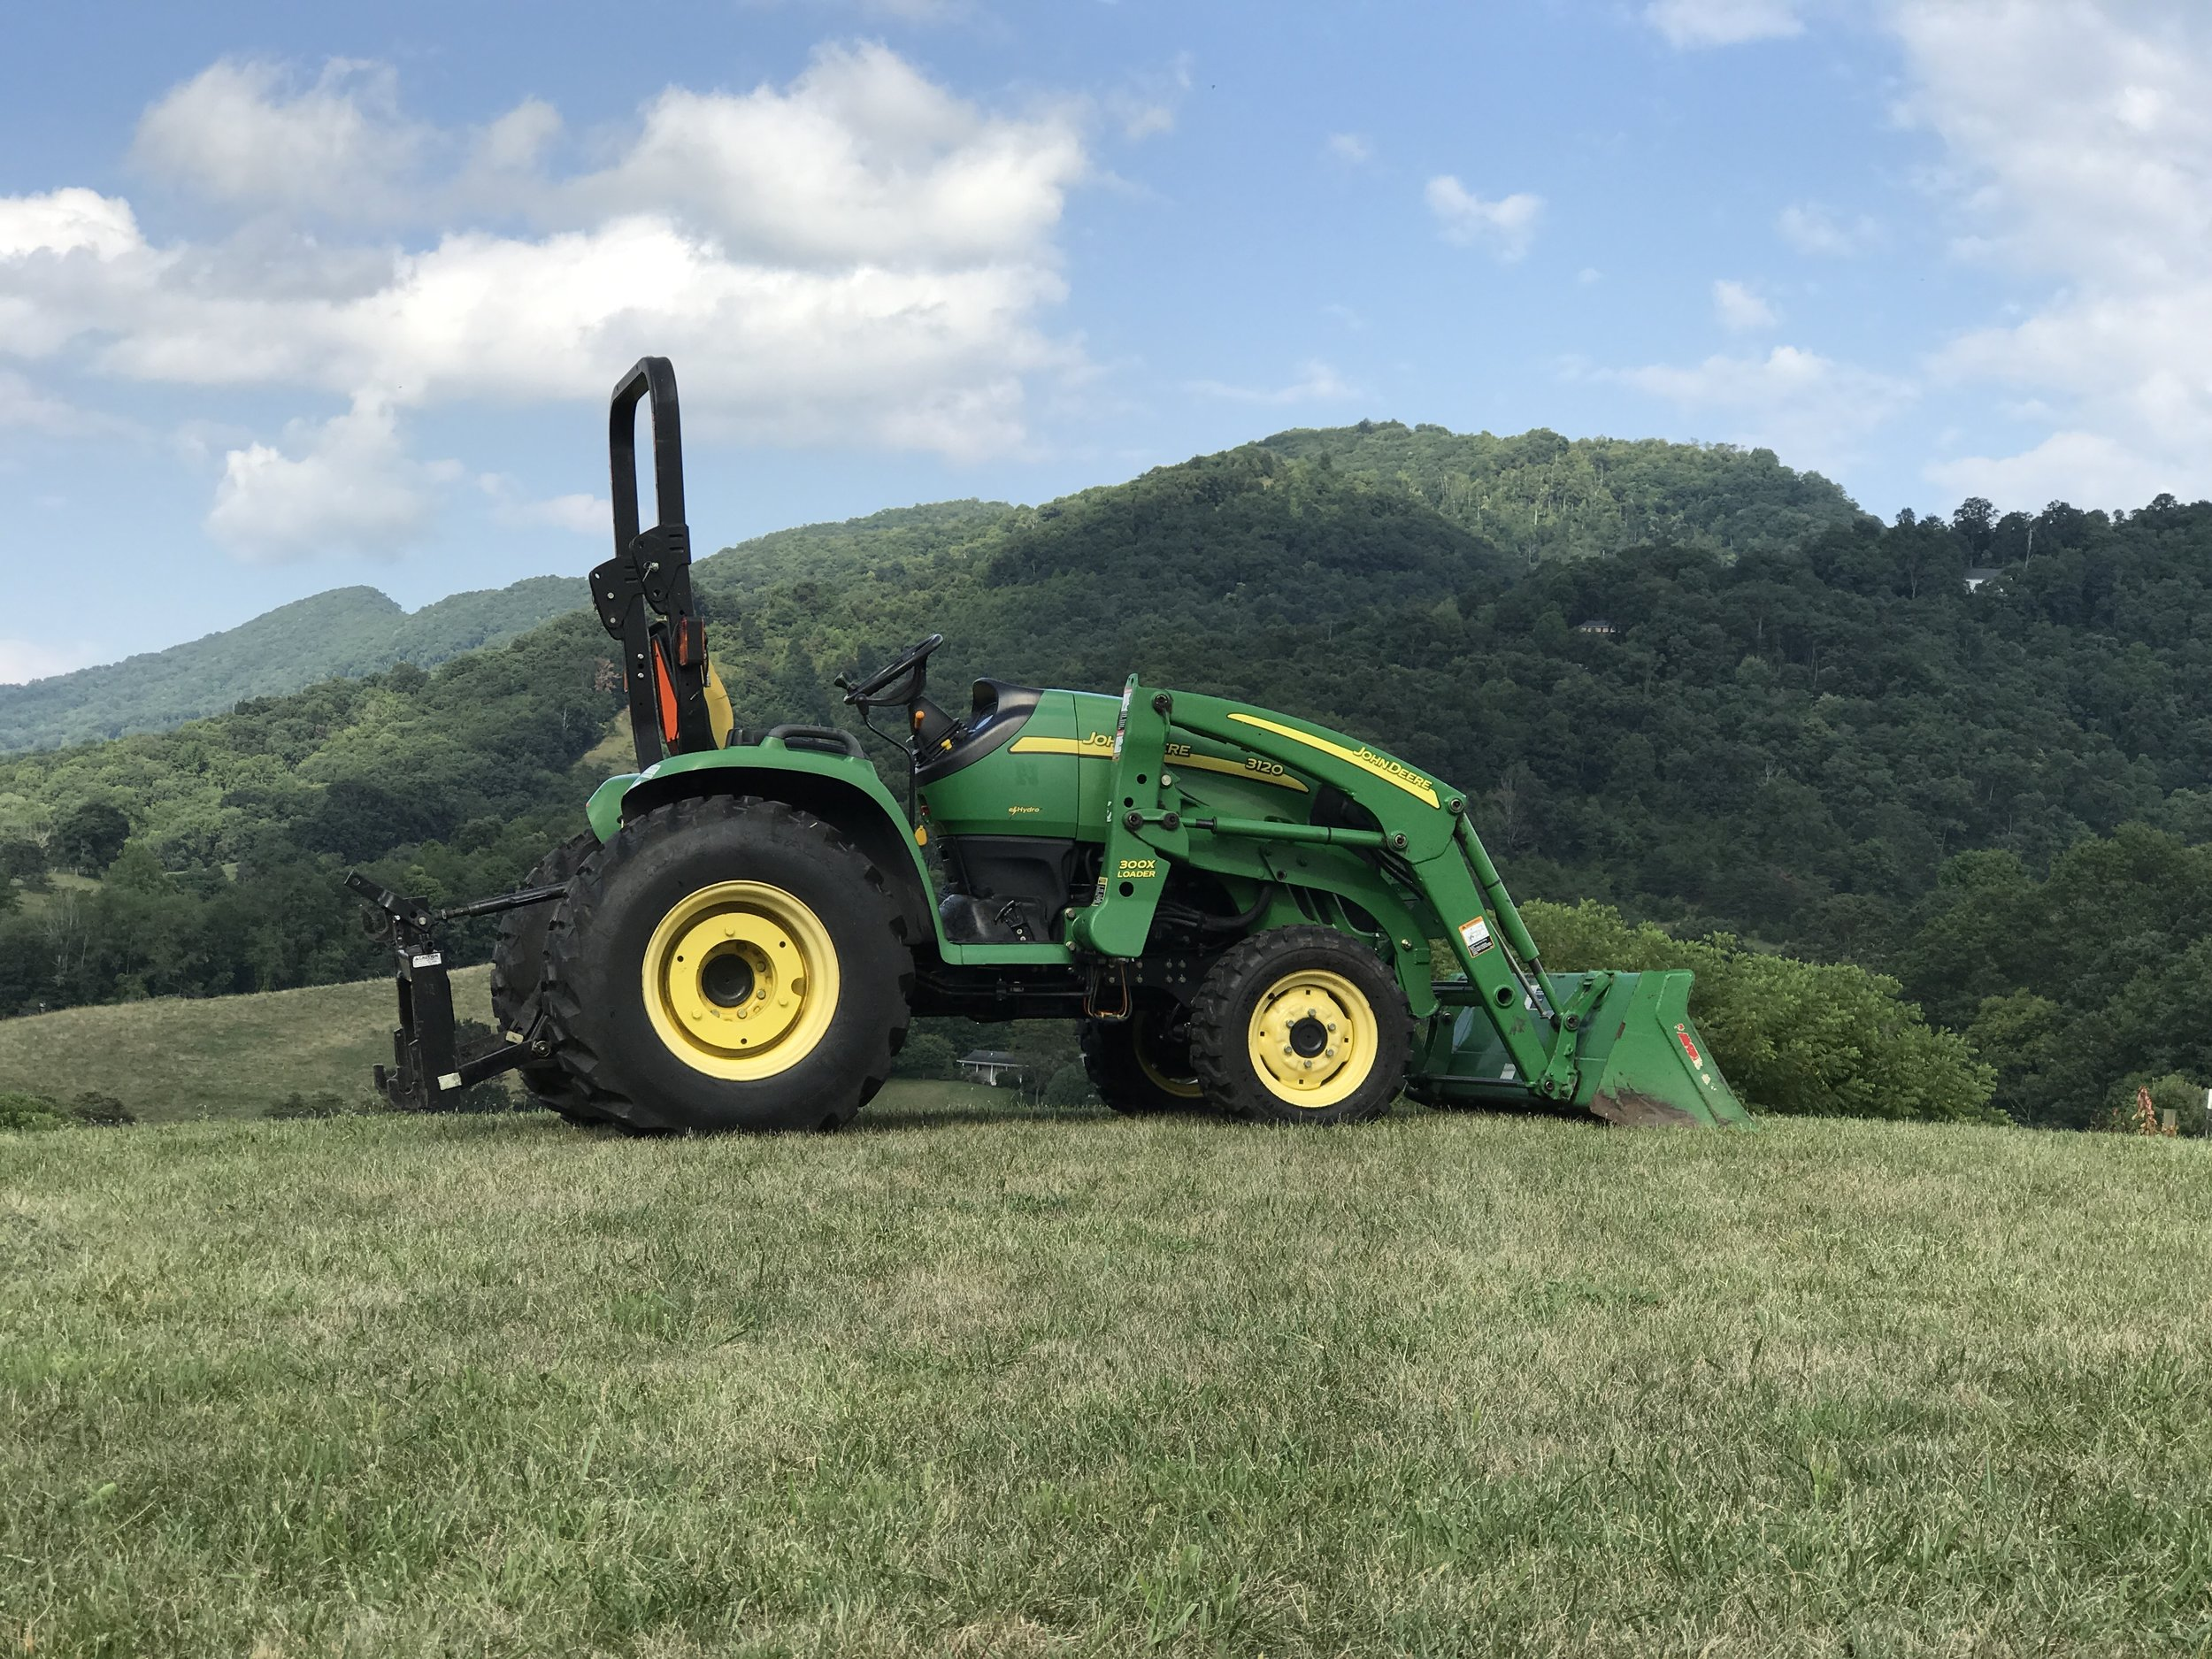 Papertown_Rental_JohnDeere_Tractor.jpg